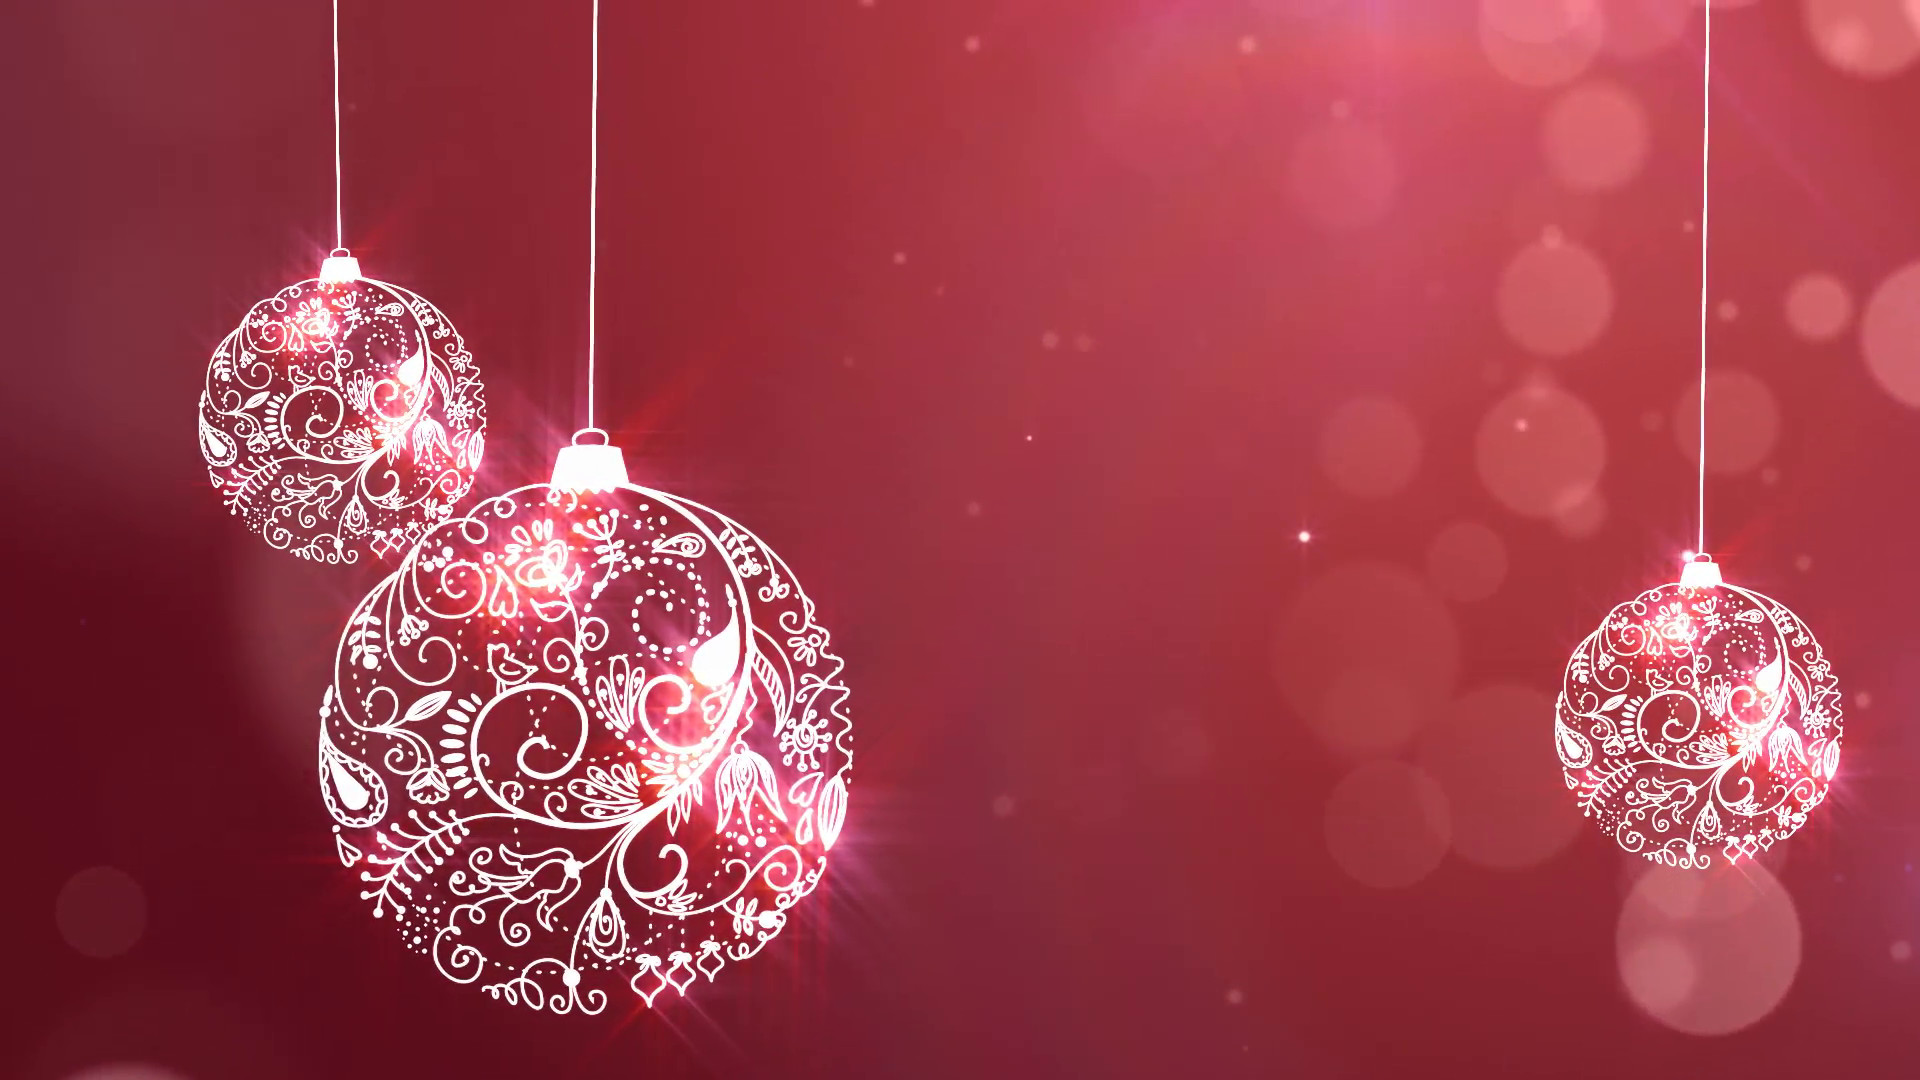 Subscription Library Christmas Ornament Background